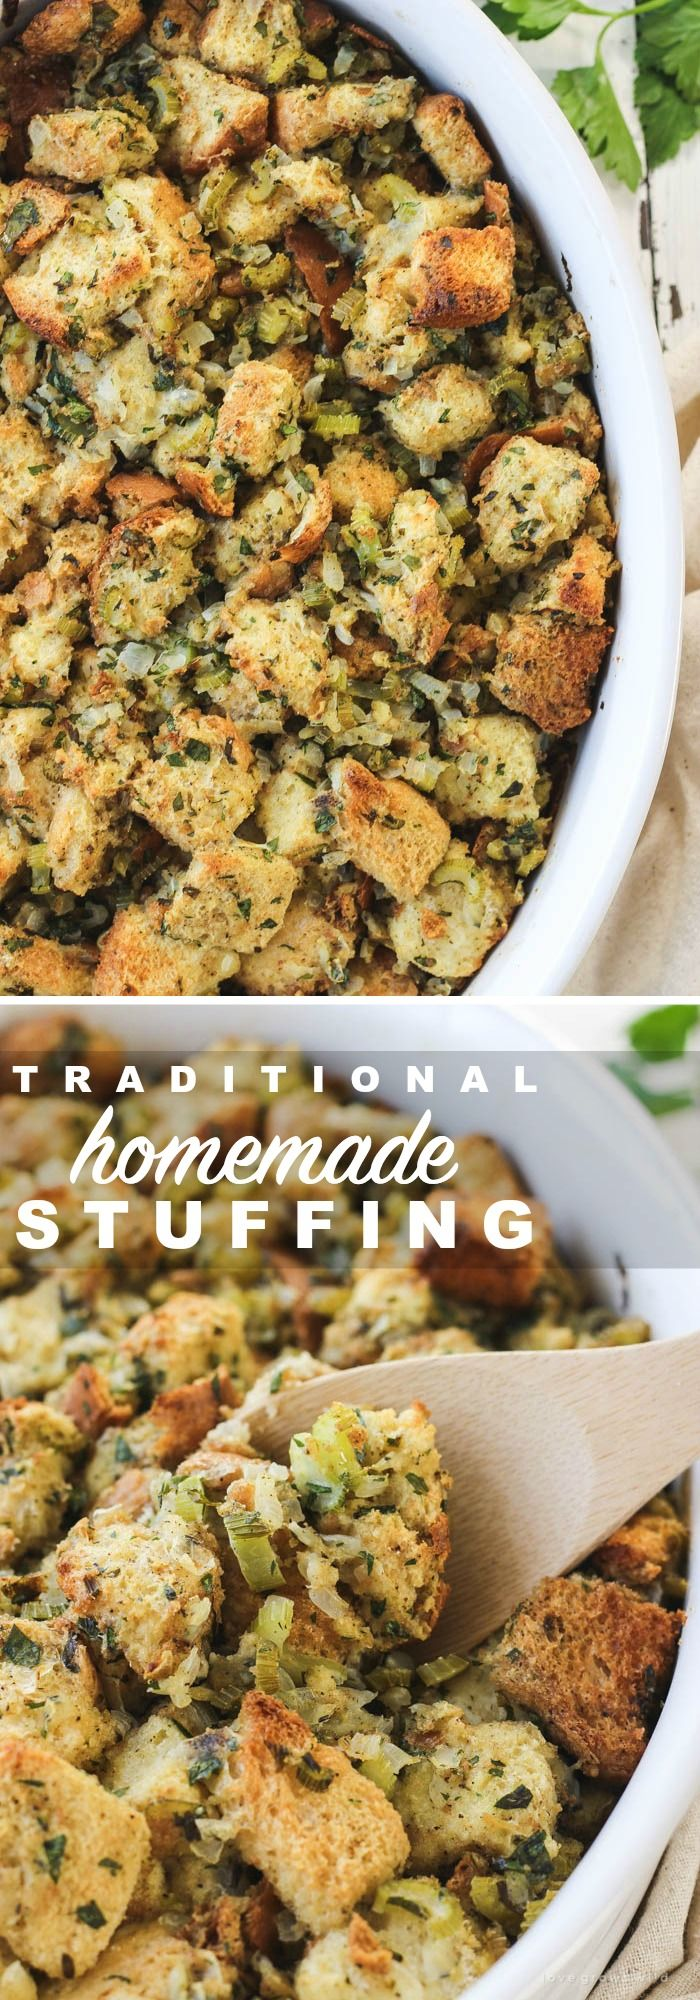 Traditional Homemade Stuffing - This simple stuffing recipe is a MUST for the holidays! Get the recipe at LoveGrowsWild.com